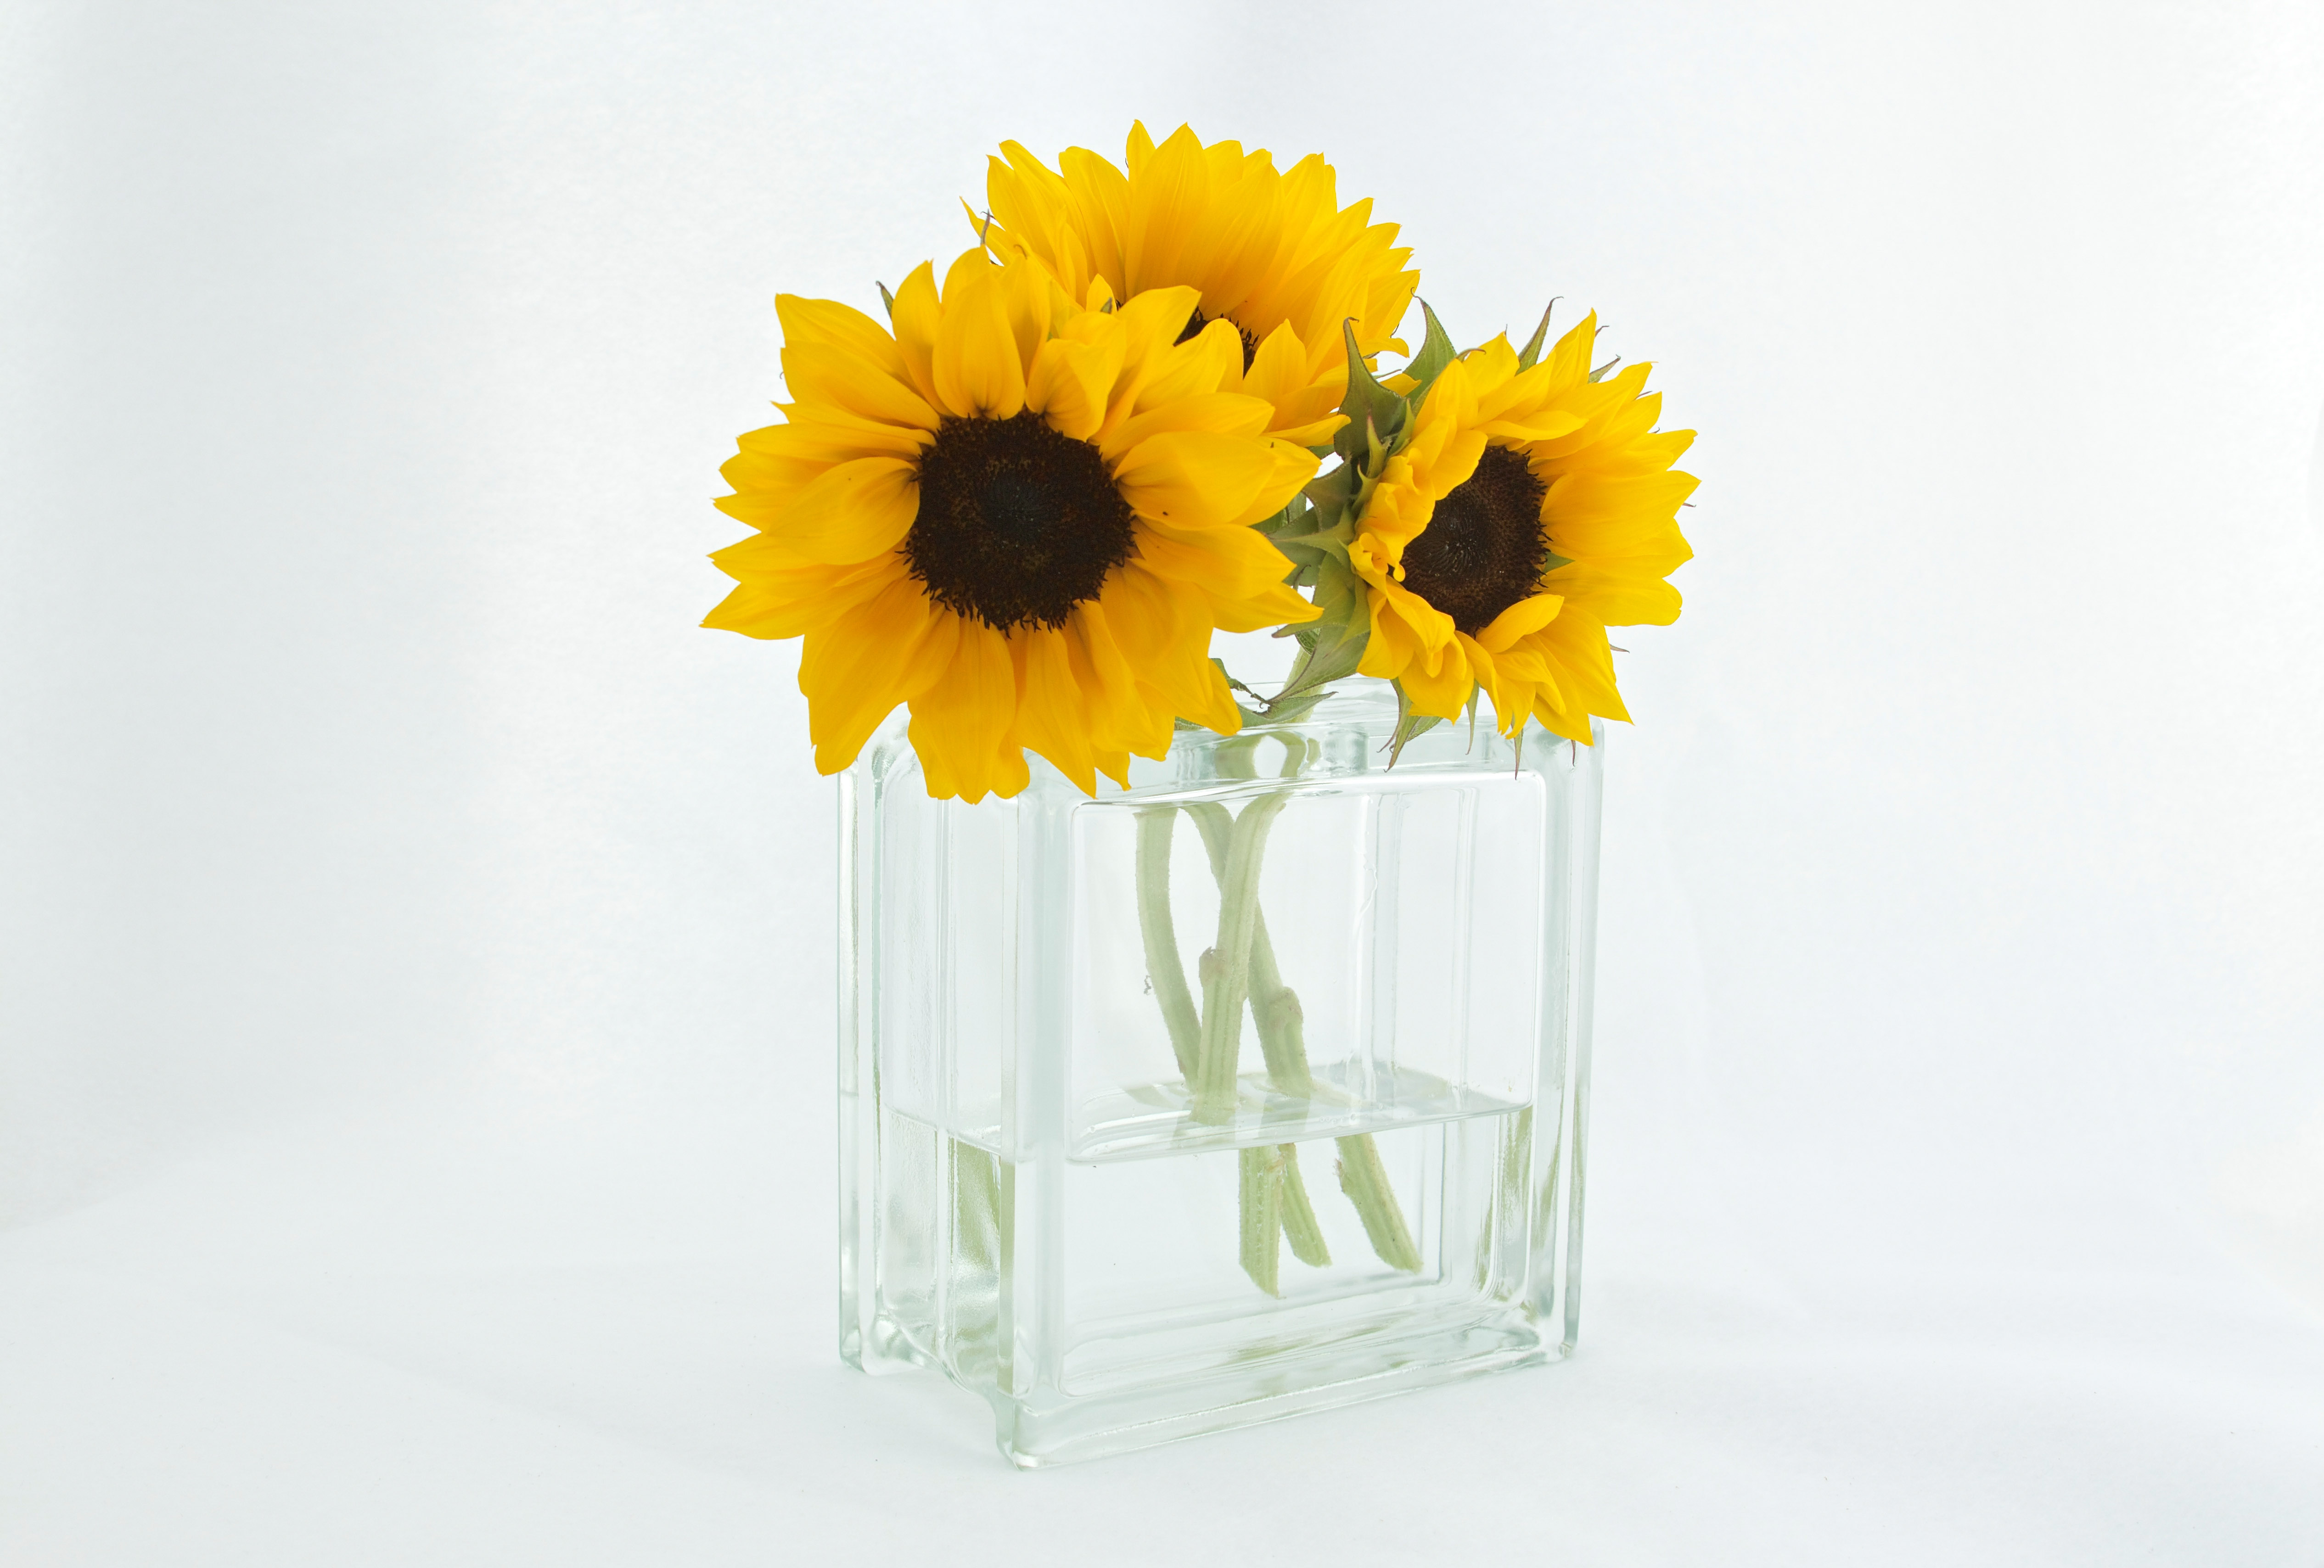 Free stock photo of flowers sunflowers vase free download floridaeventfo Images